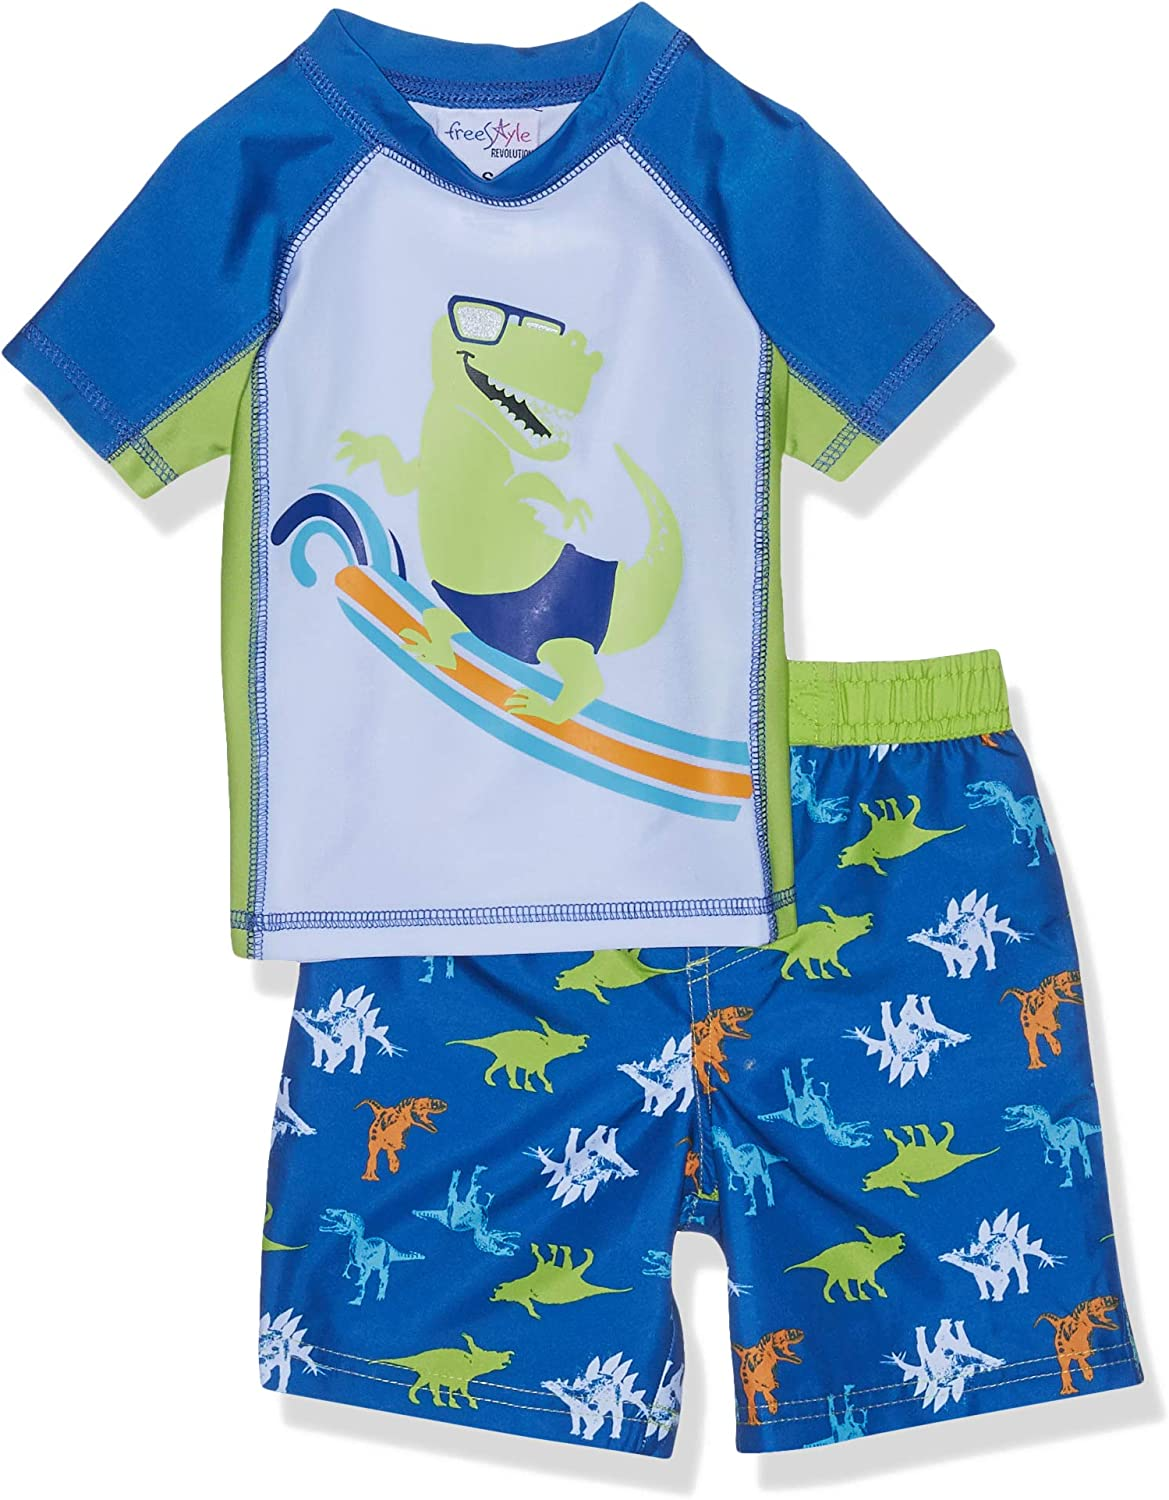 Freestyle Revolution Boys' Dino Surfer Rash Guard Top and Shorts Set Multicolor, 3 Years